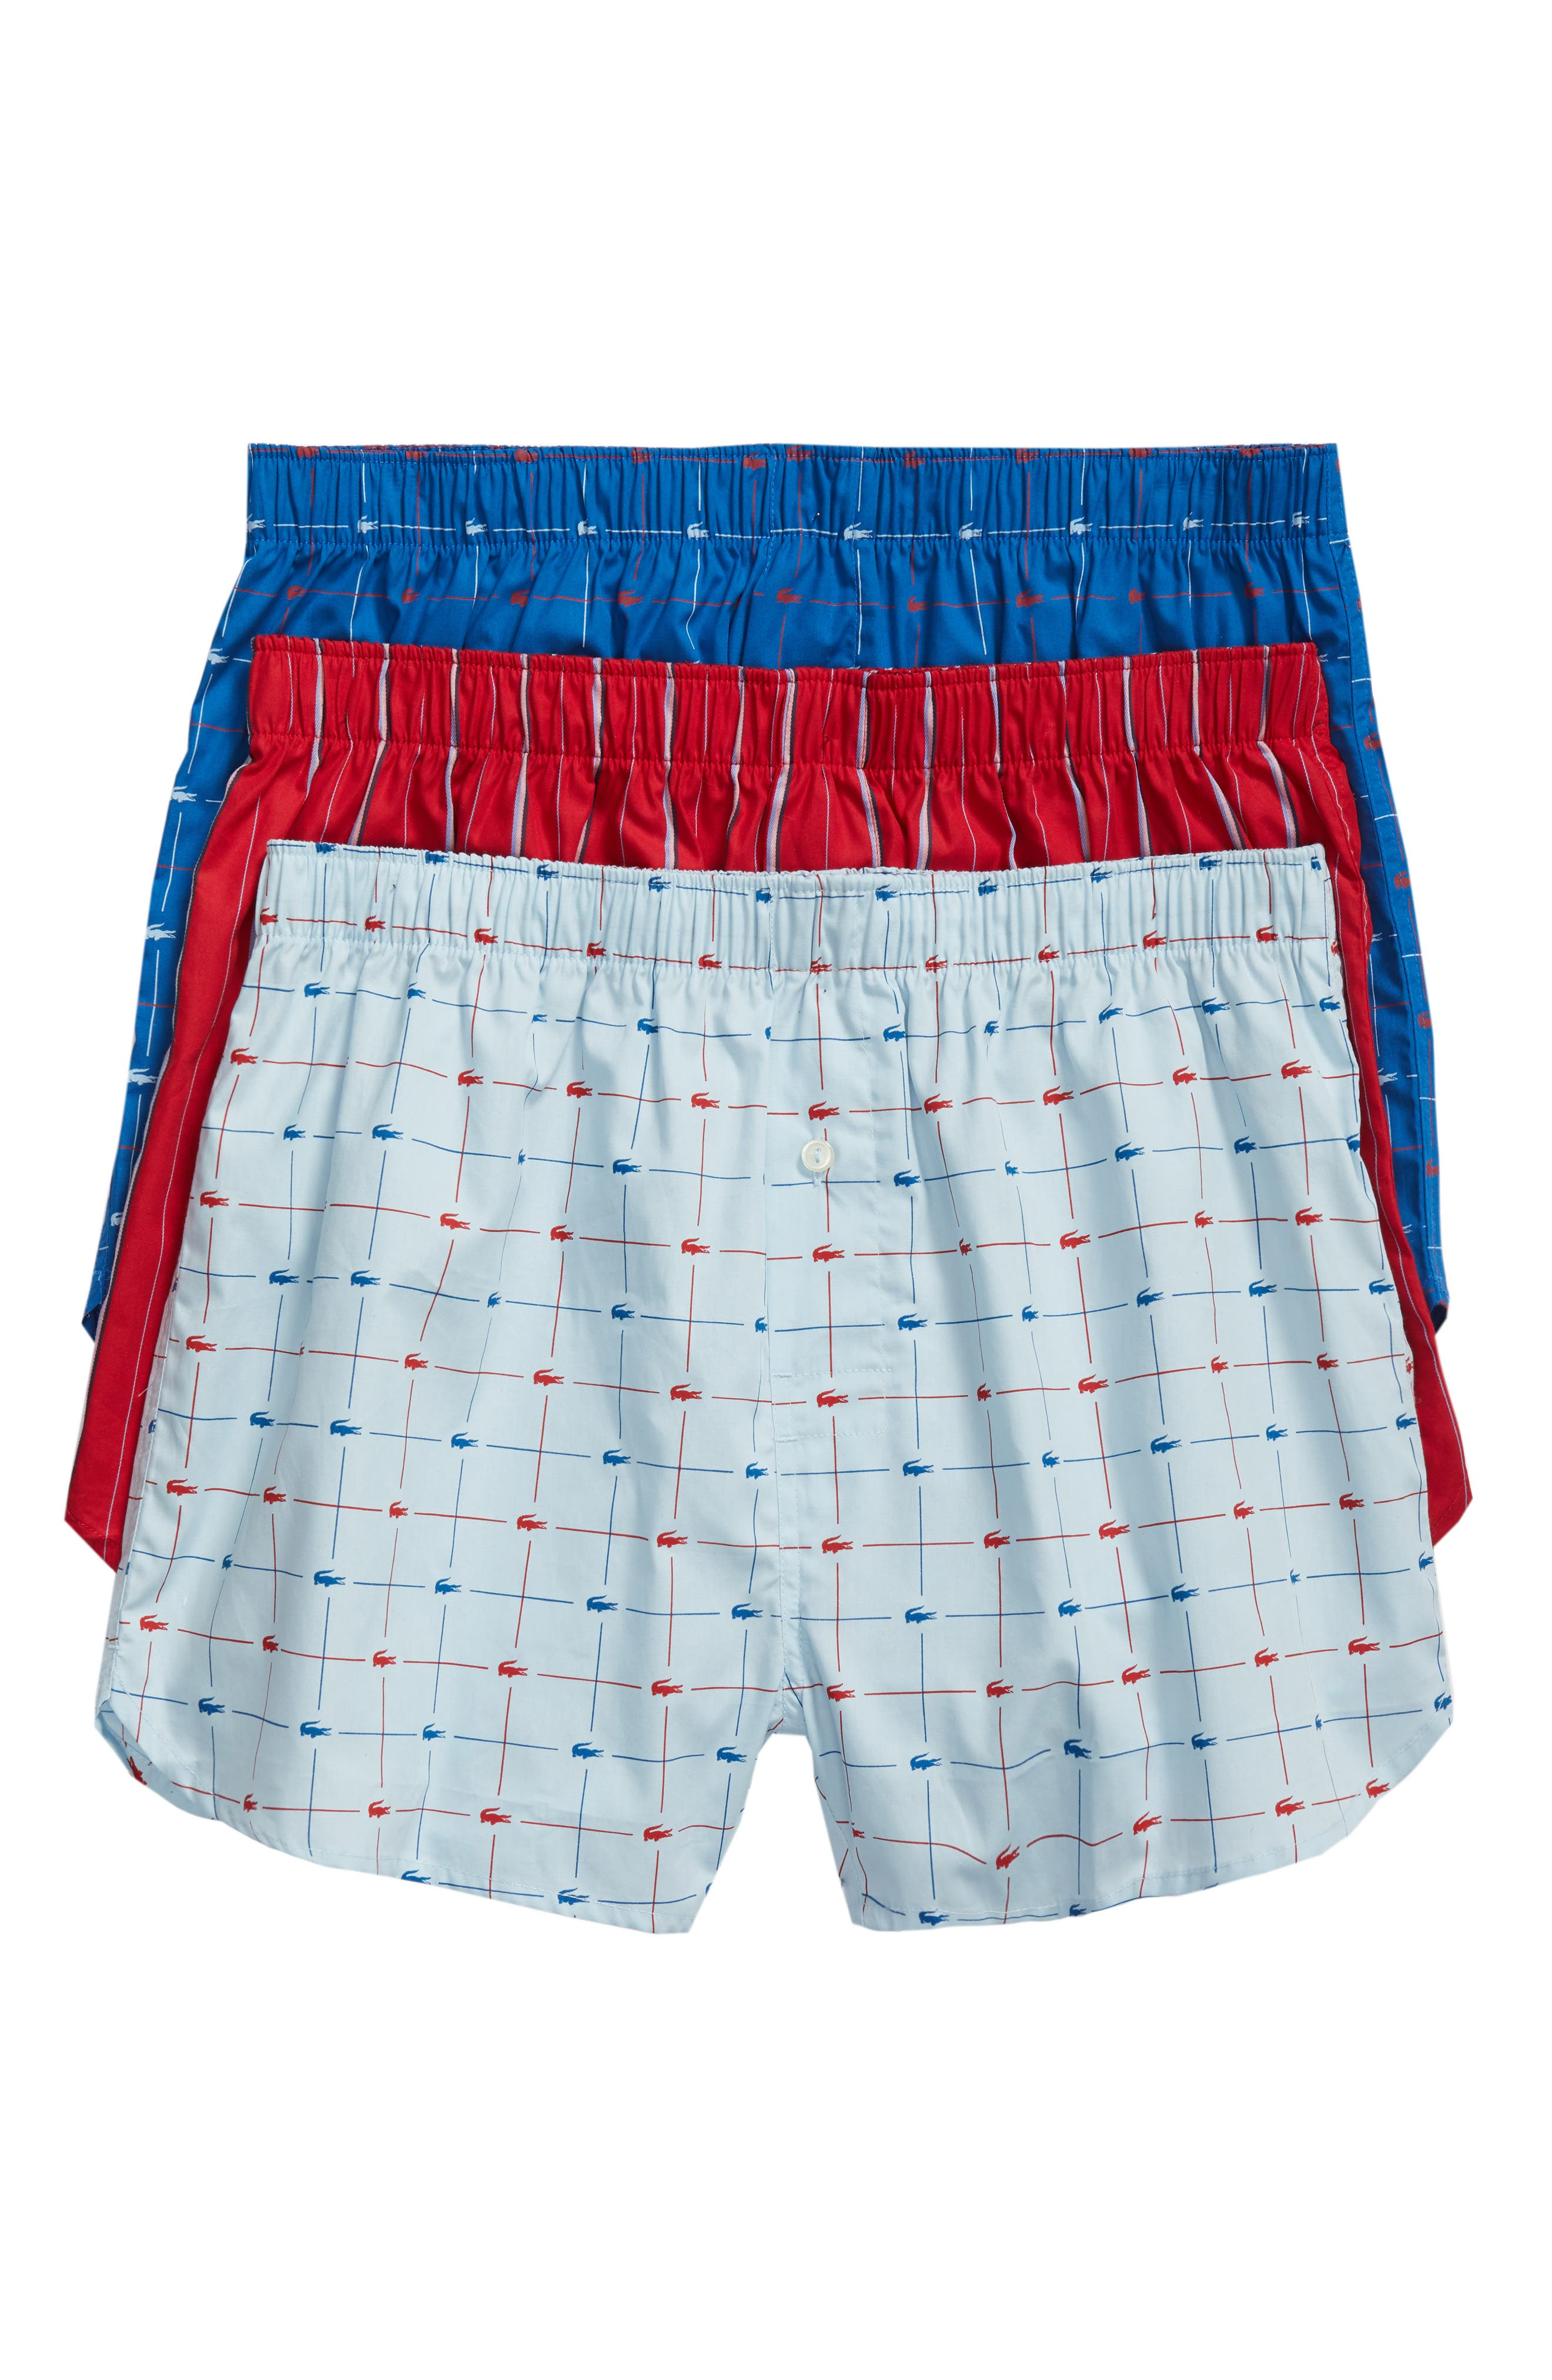 3-Pack Cotton Boxers,                         Main,                         color,